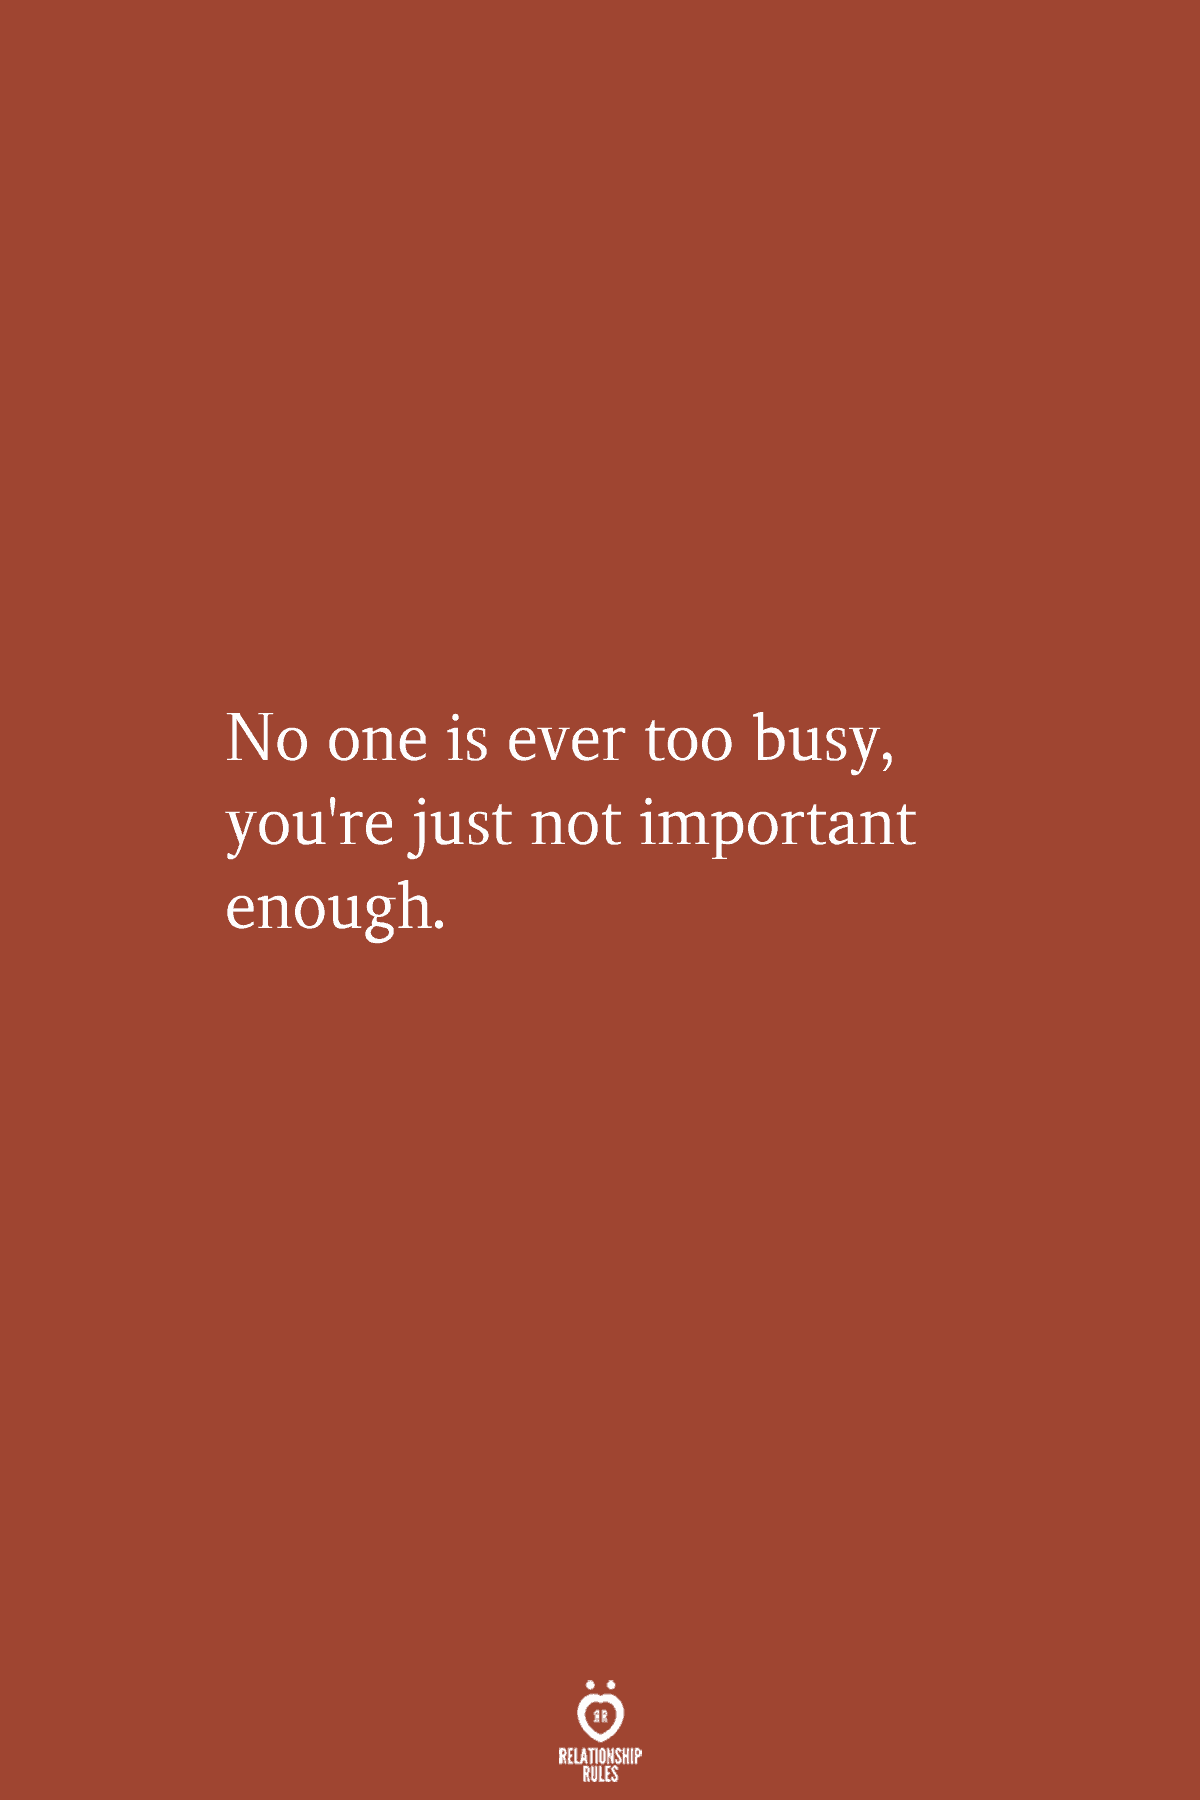 No One Is Ever Too Busy, You're Just Not Important Enough